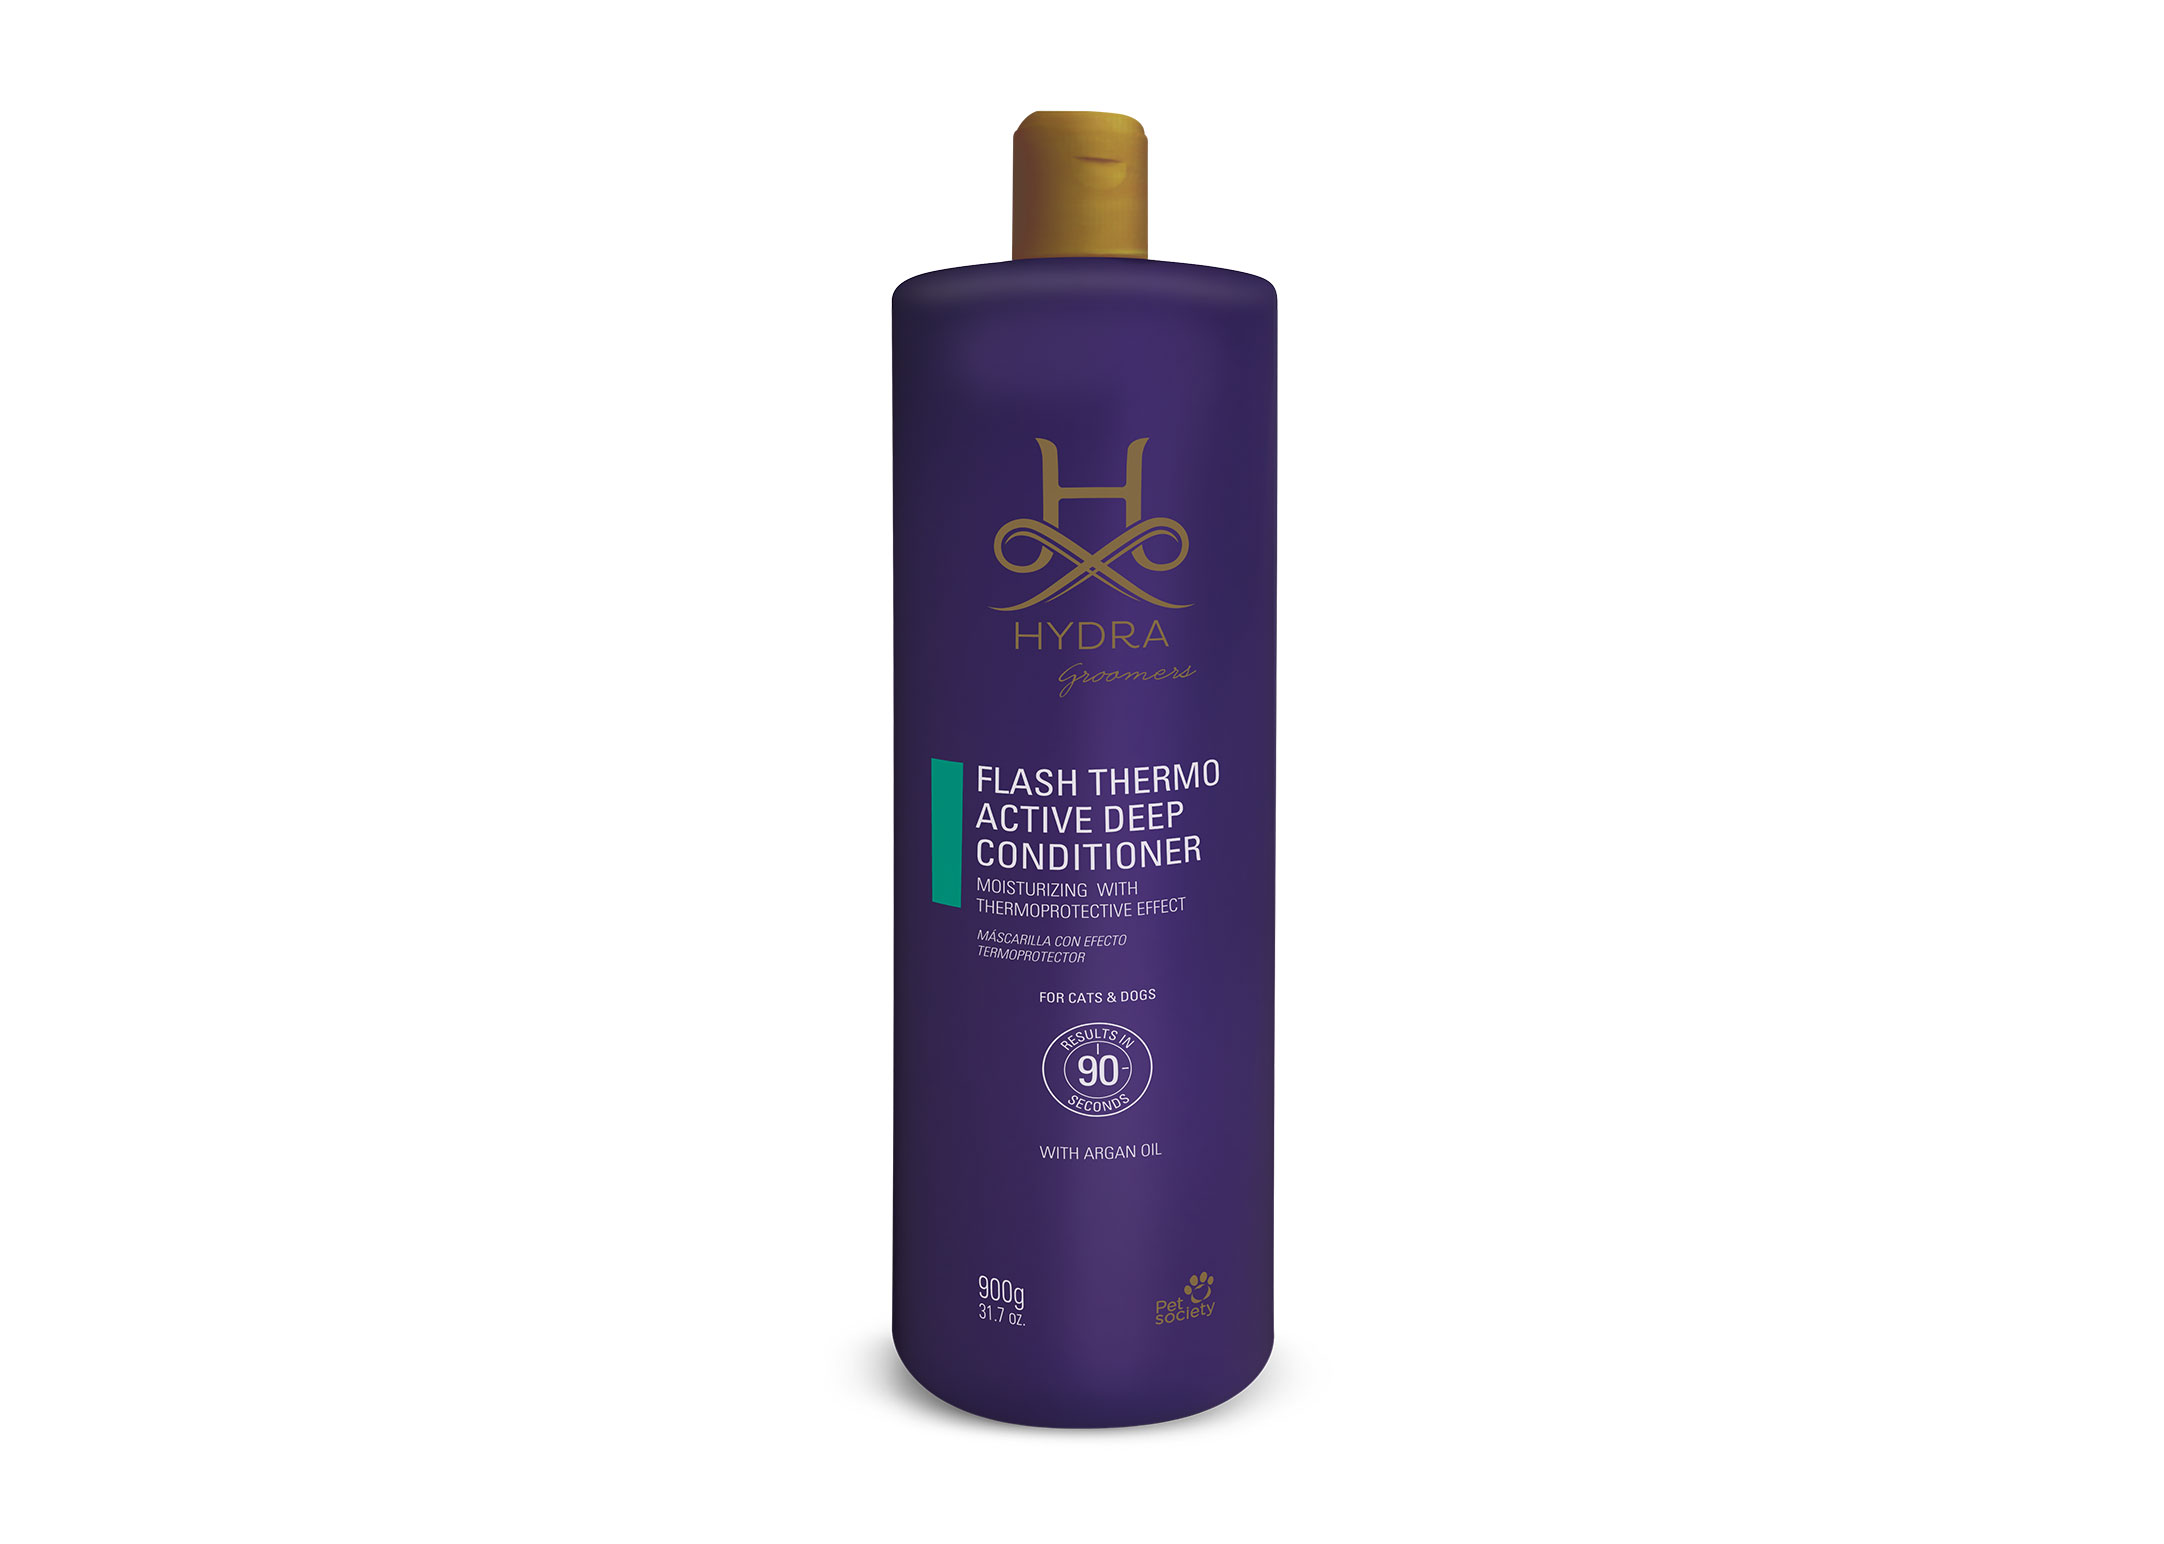 Hydra Flash Thermo Active Deep 900ml  Après-shampoing